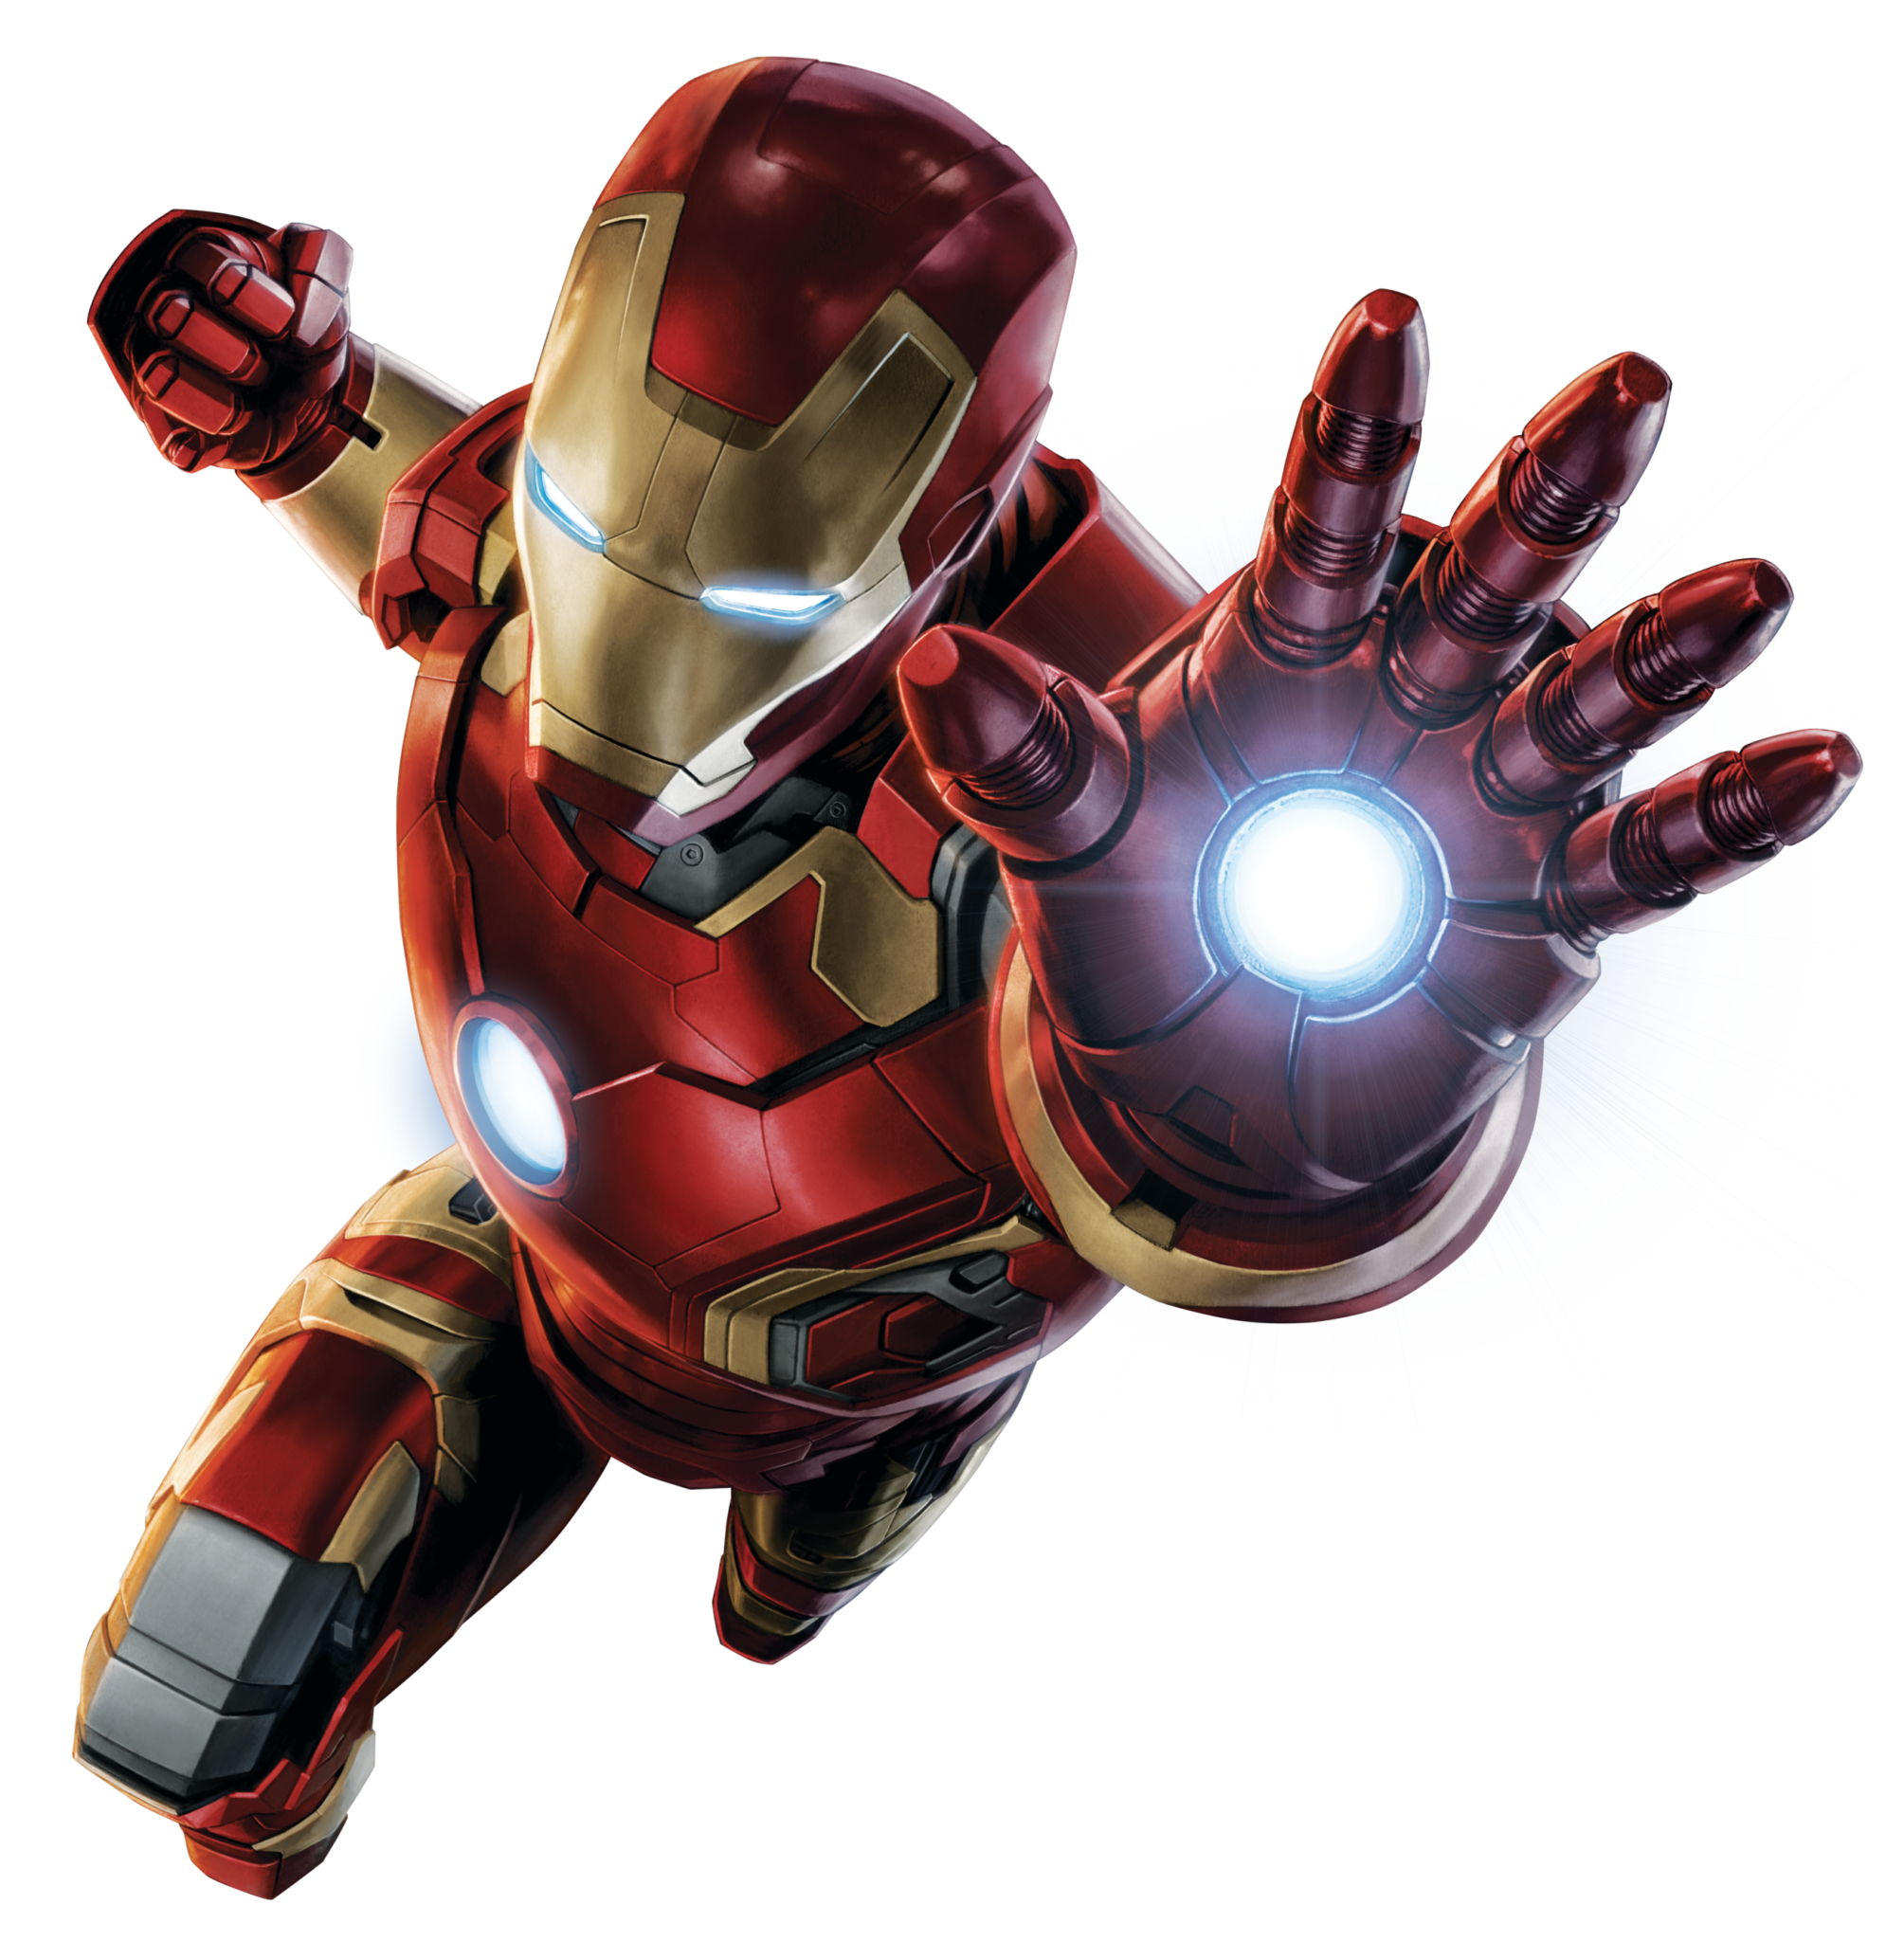 1097357-beautiful-iron-man-wallpaper